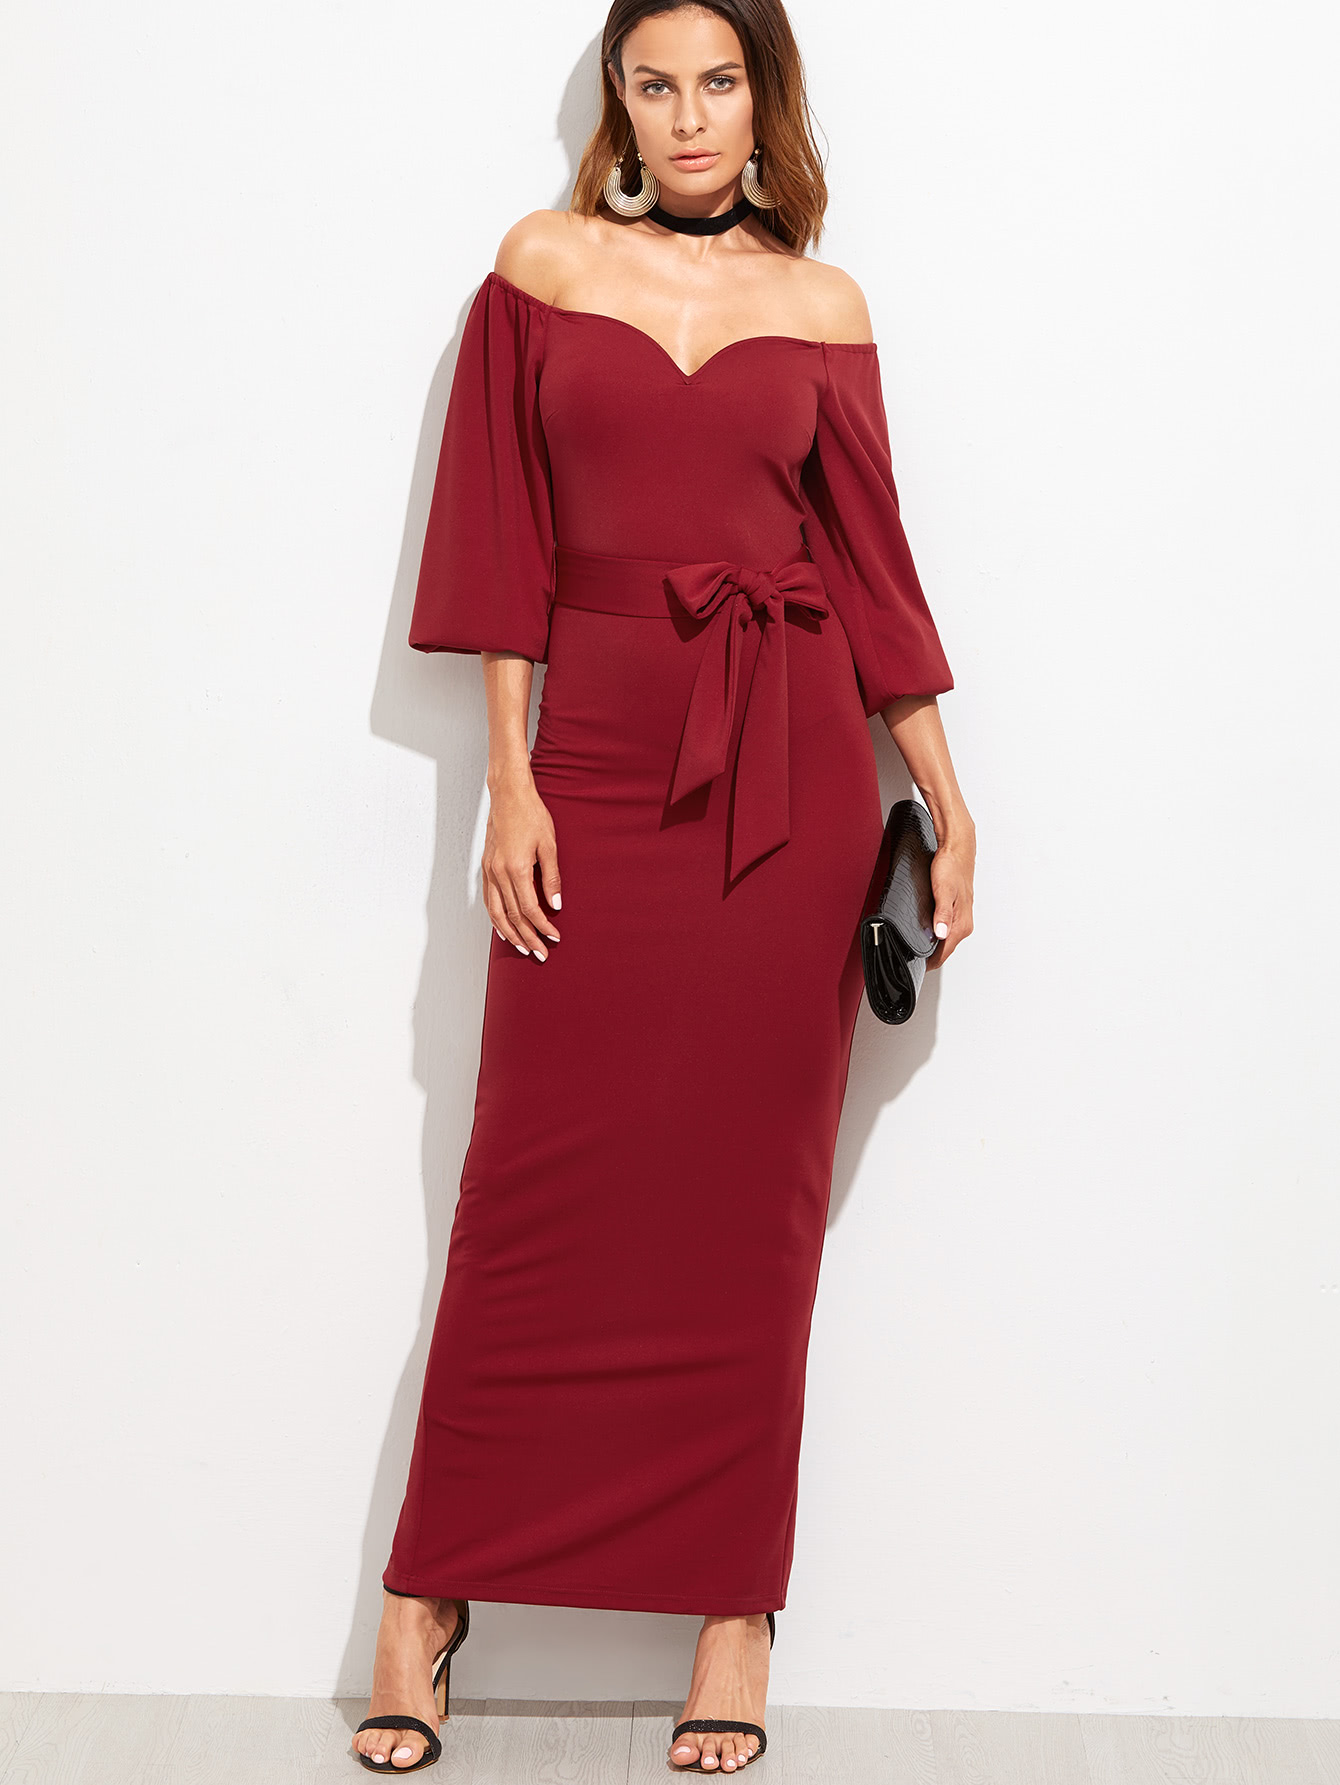 Sweetheart Off Shoulder Belted Dress sweetheart off shoulder asymmetrical bodycon dress